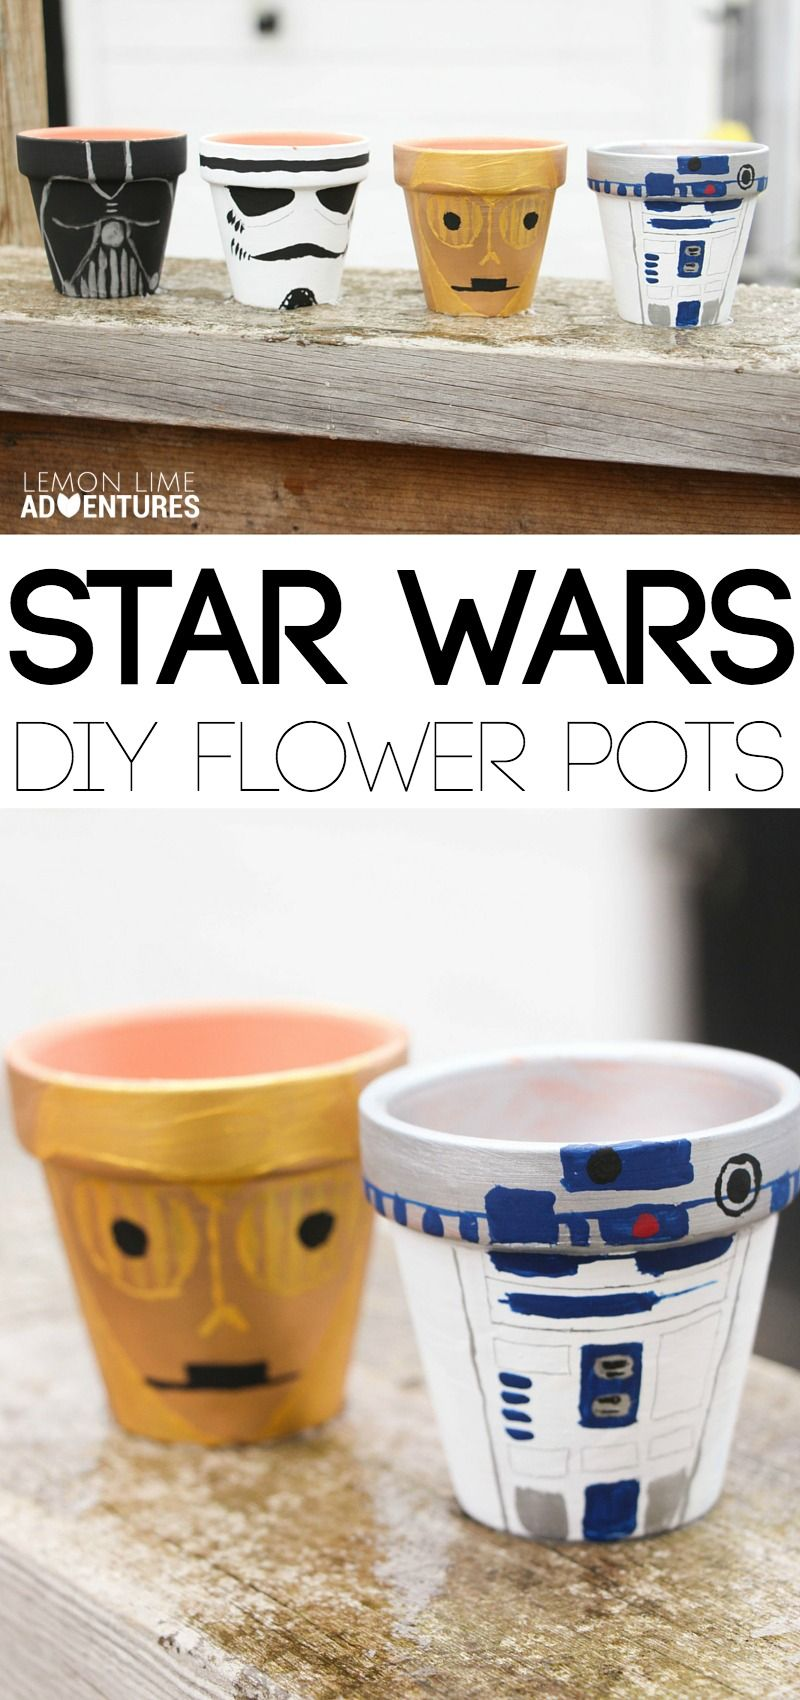 diy star wars garden pots kindergeburtstag pinterest ideen garten und geschenkideen. Black Bedroom Furniture Sets. Home Design Ideas